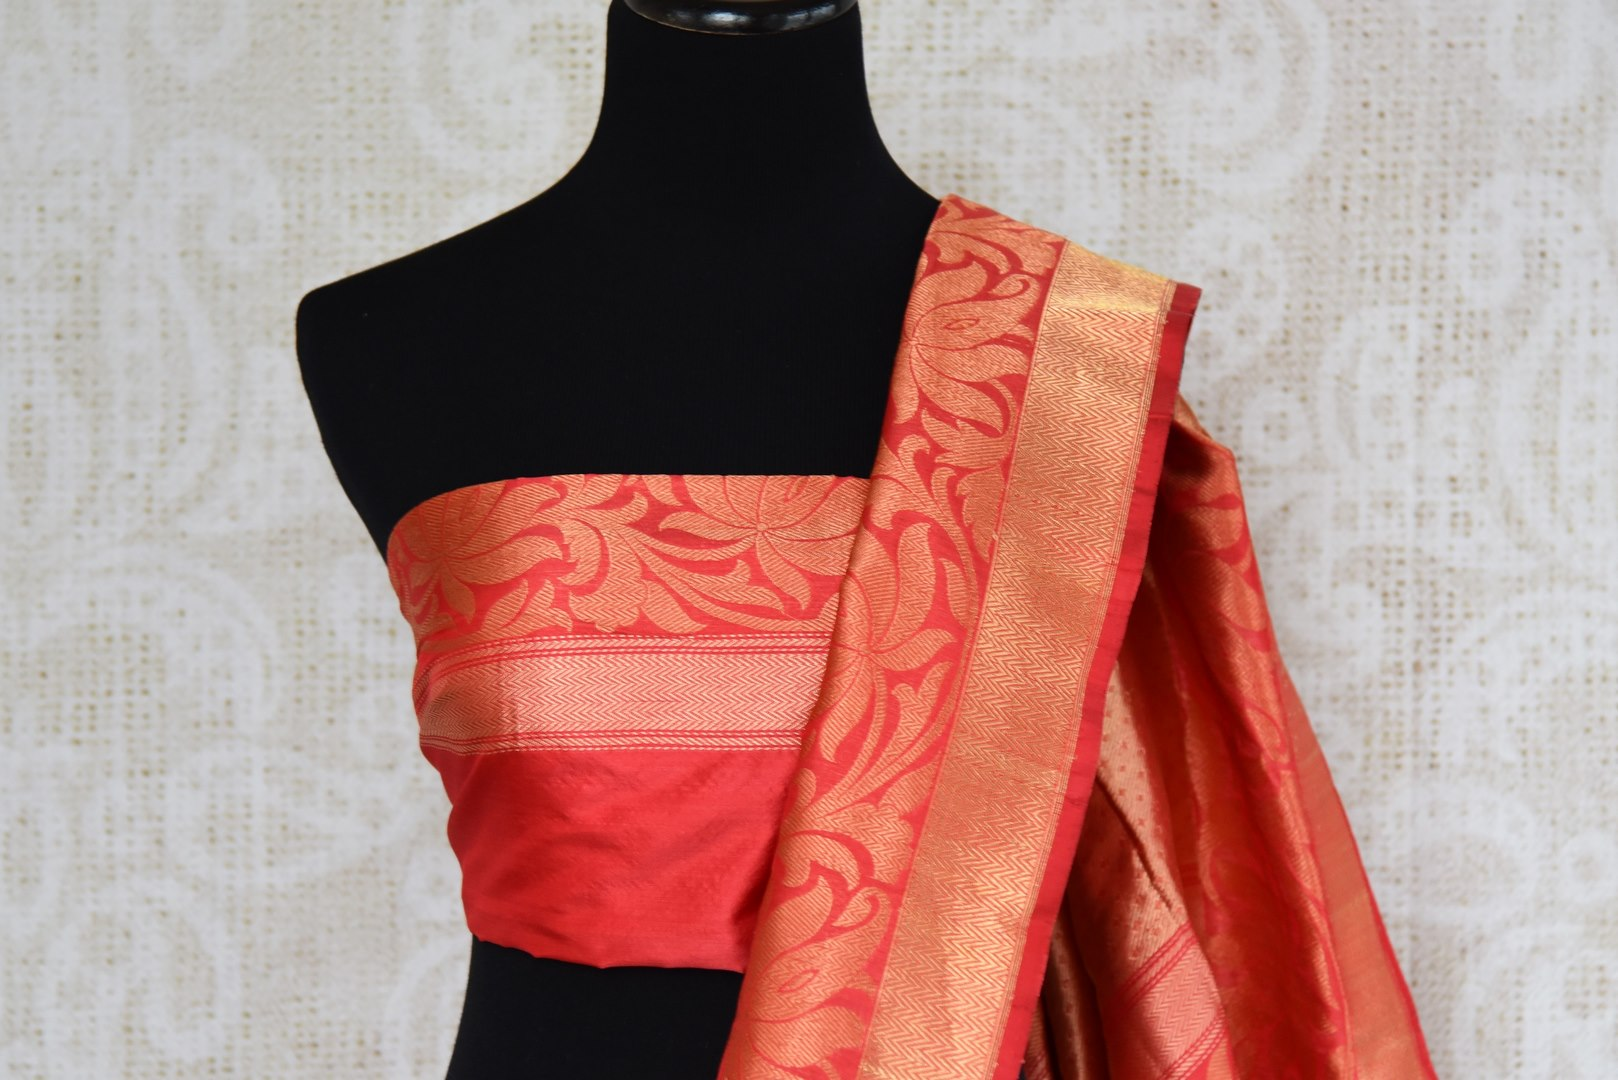 Buy multicolor Banarasi silk saree with zari border online in USA. The saree is a stunning drape for an ethnic Indian look at weddings and special occasions. Find more such exquisite Indian silk sarees, Banarasi sarees in USA at Pure Elegance Indian fashion store. Shop now.-blouse pallu